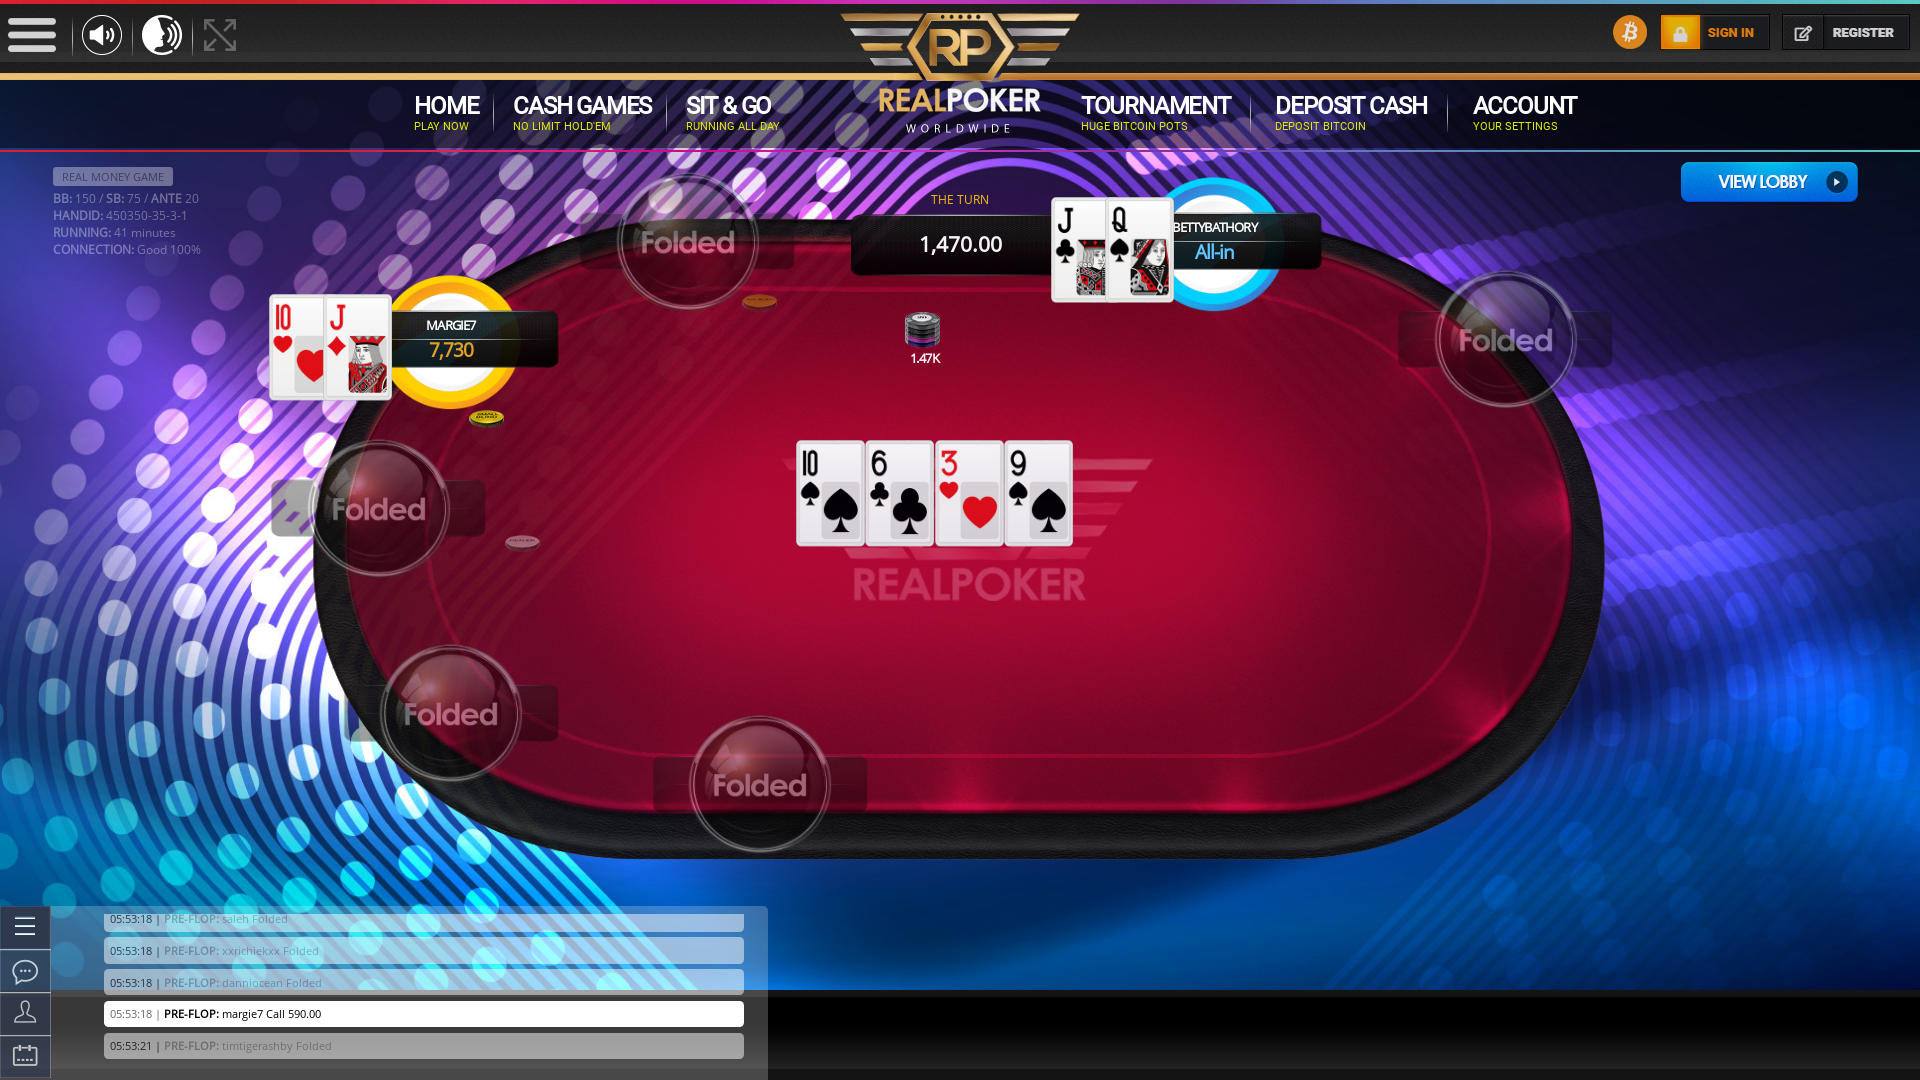 Italy online poker game on a 10 player table in the 41st minute